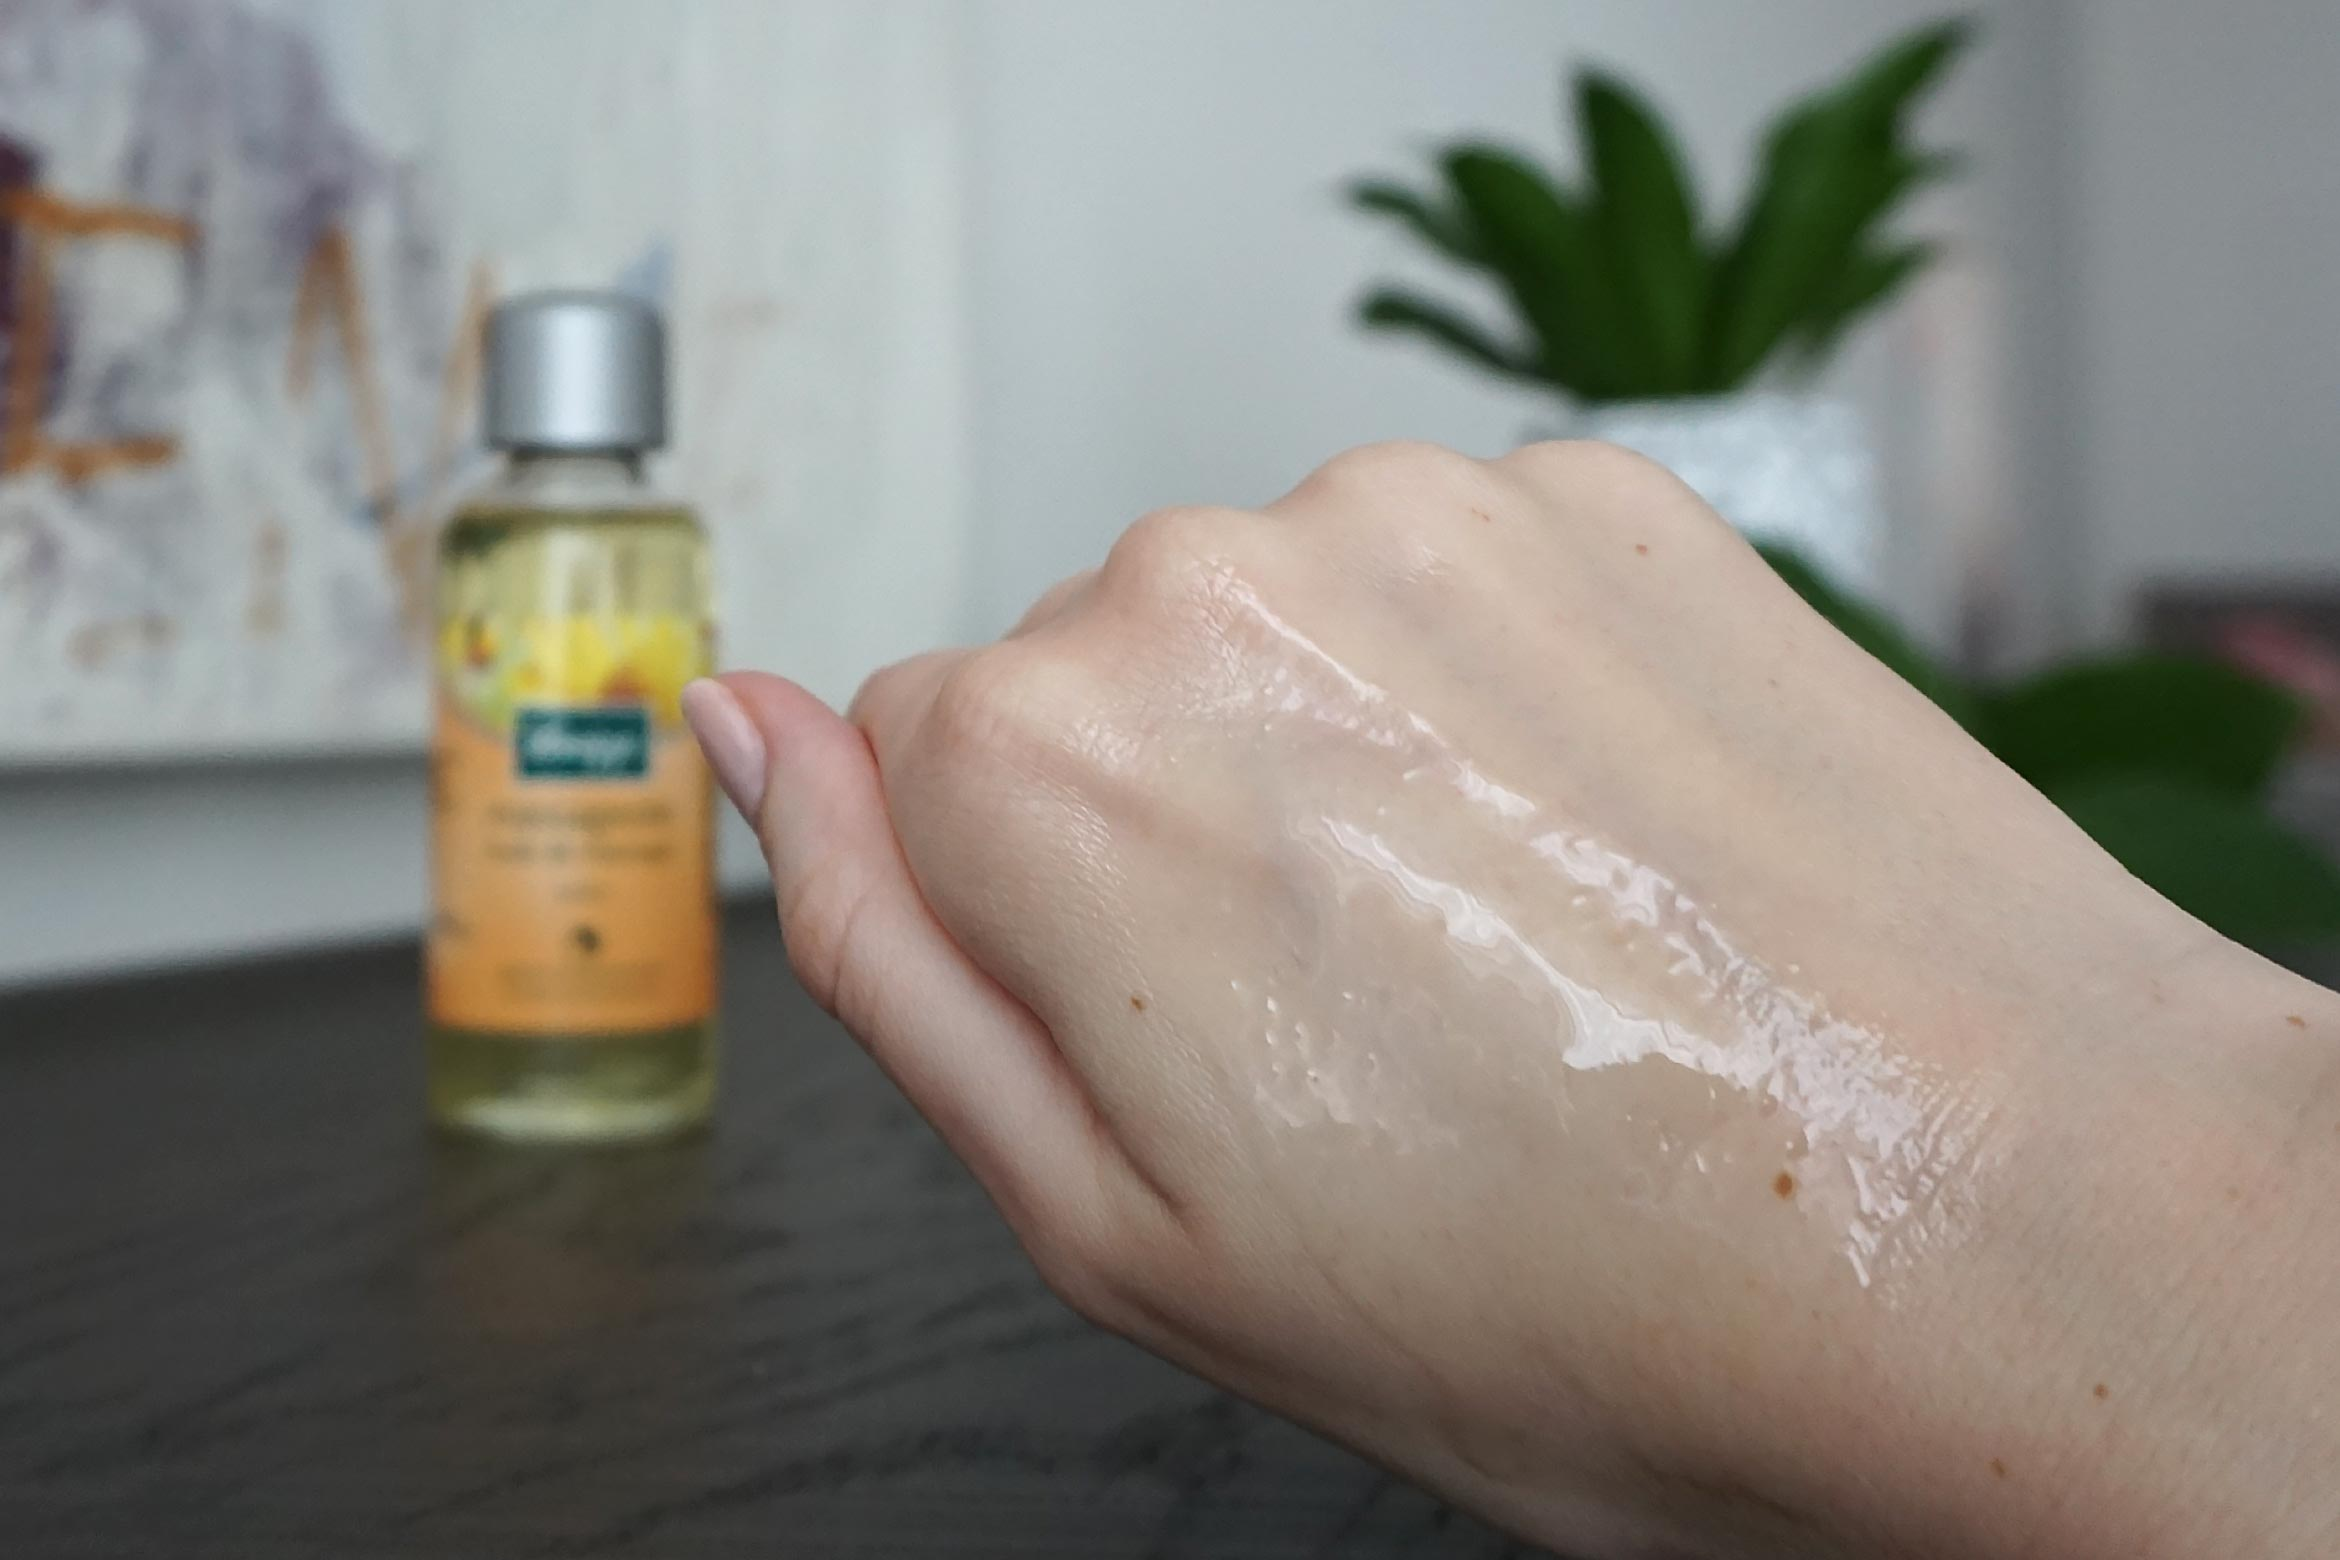 kneipp arnica massageolie review-2